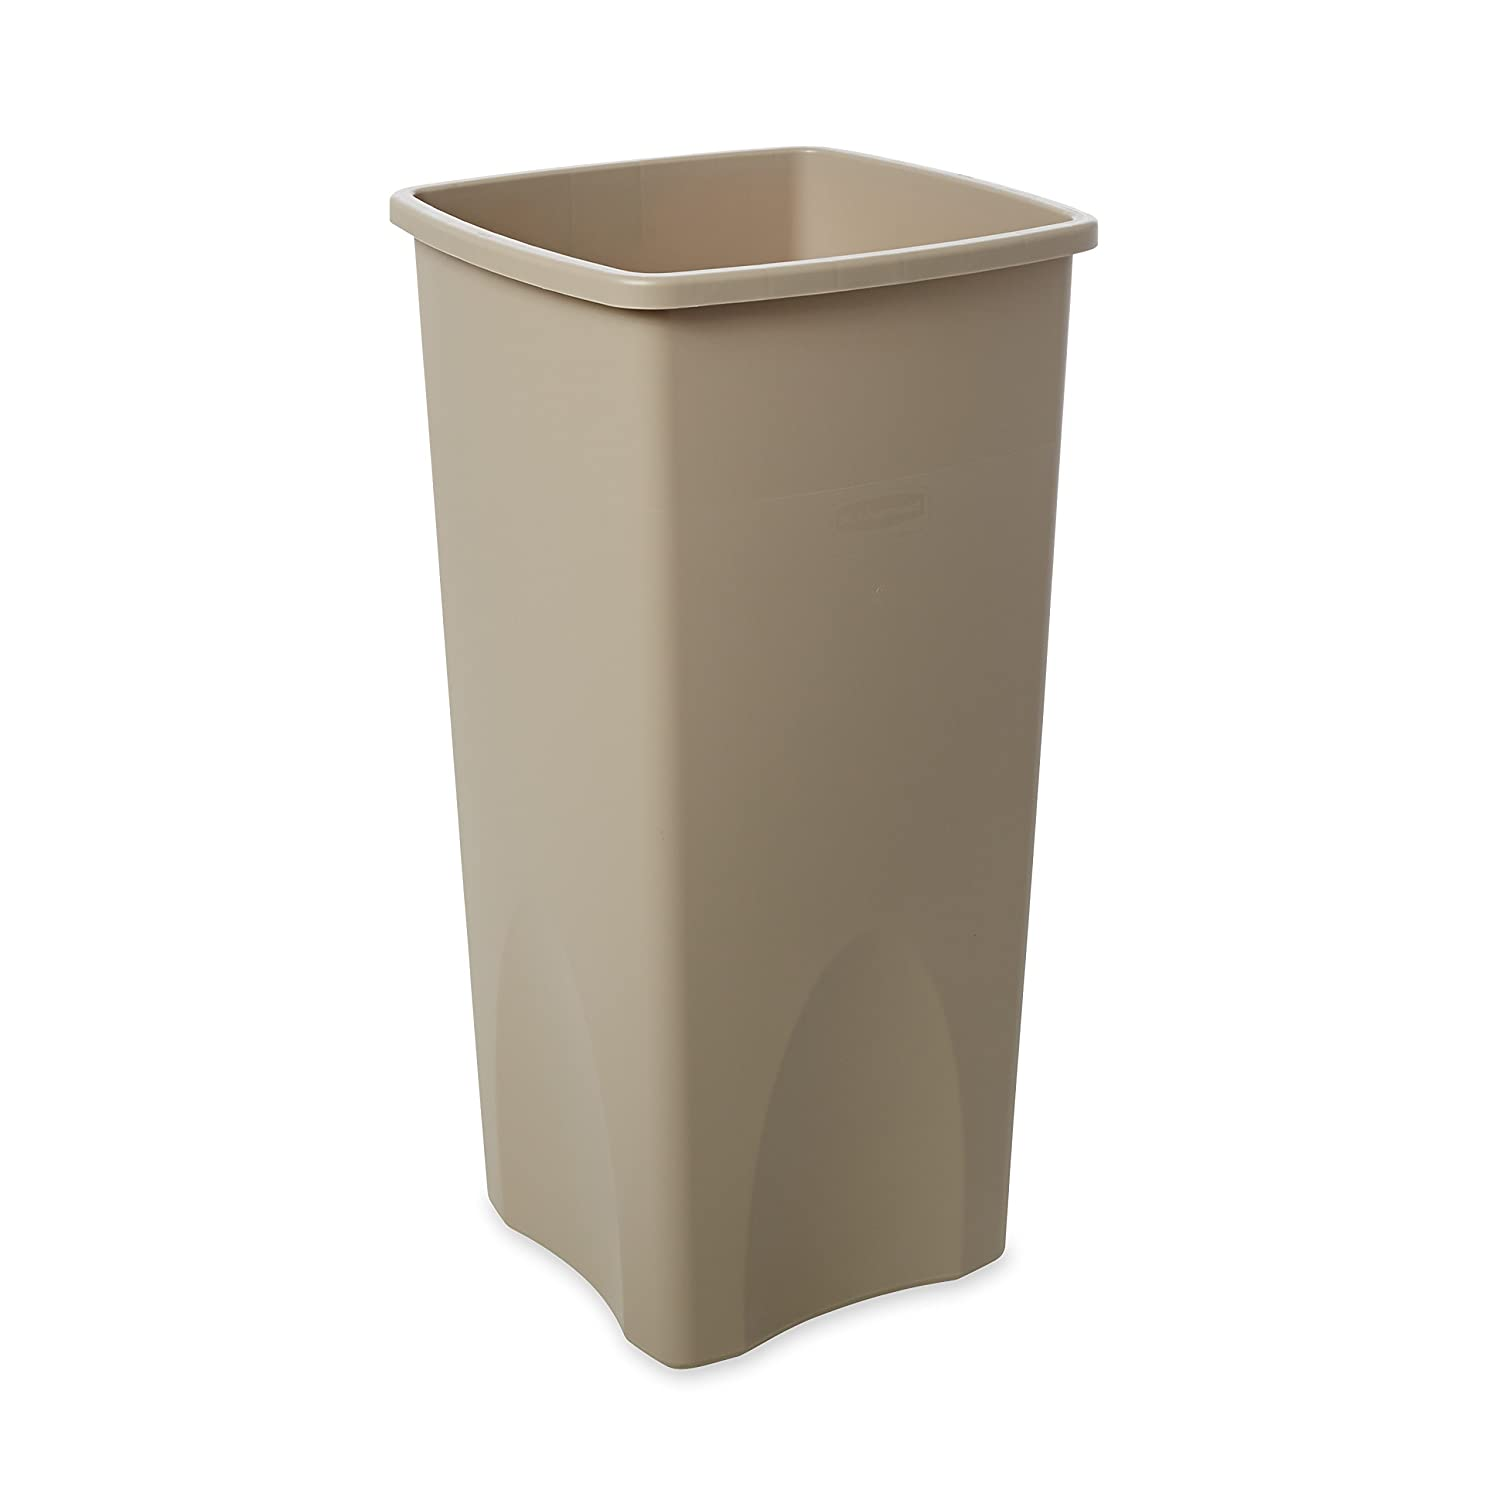 Rubbermaid Commercial Grade Trash Can Review